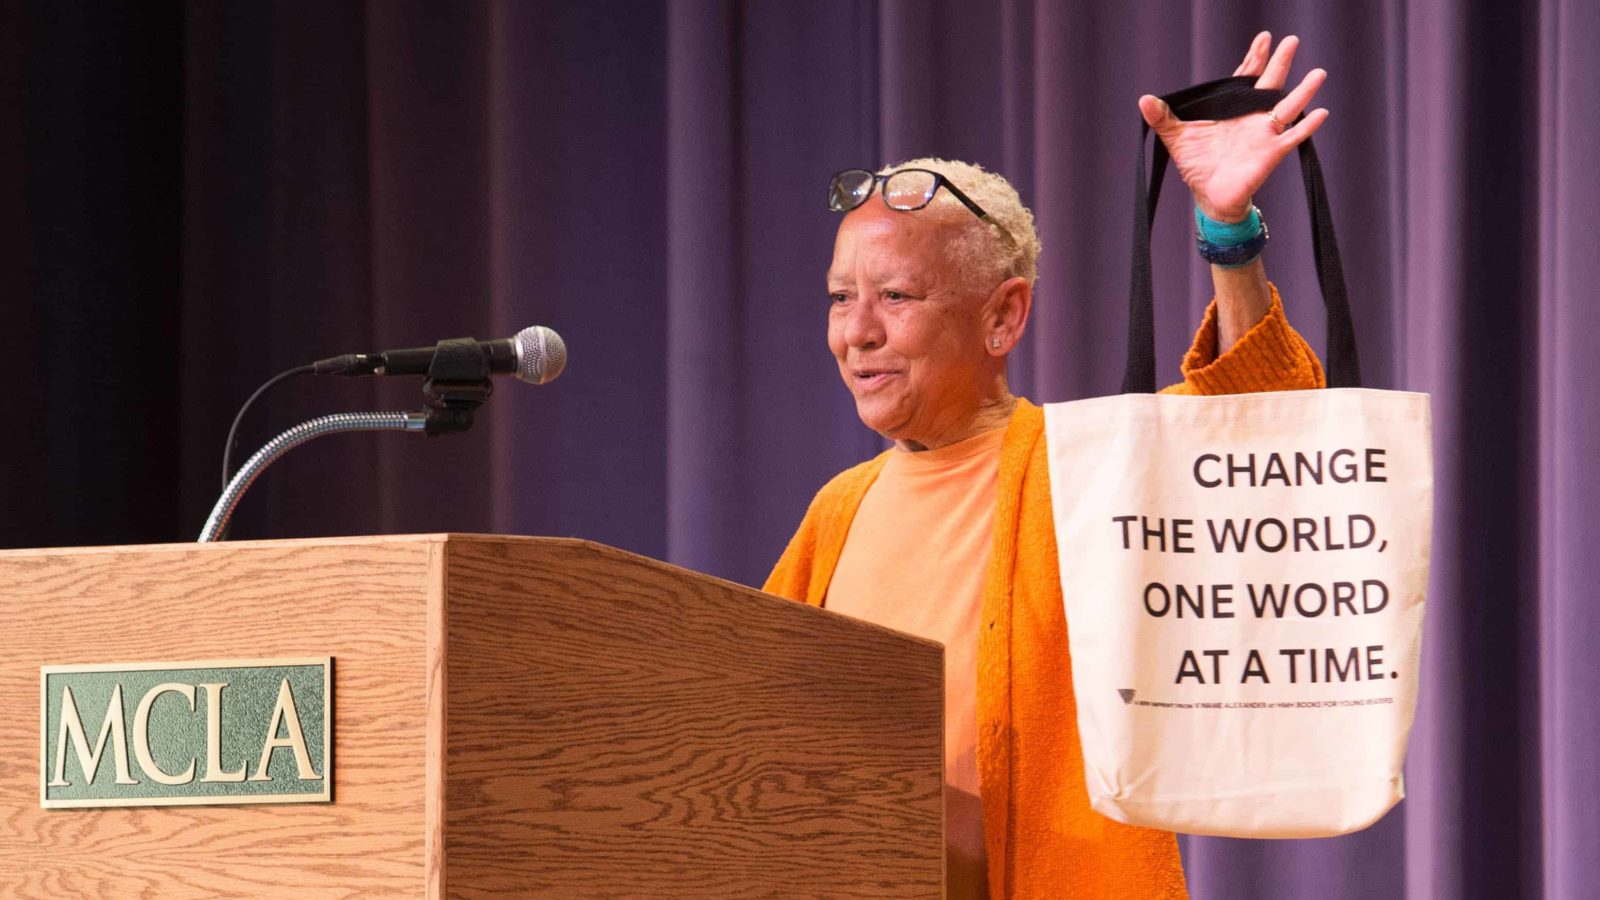 Internationally acclaimed poet, professor, writer and activist Nikki Giovanni speaks at the MCLA Institute for the Humanities' inaugural symposium in June 2019.